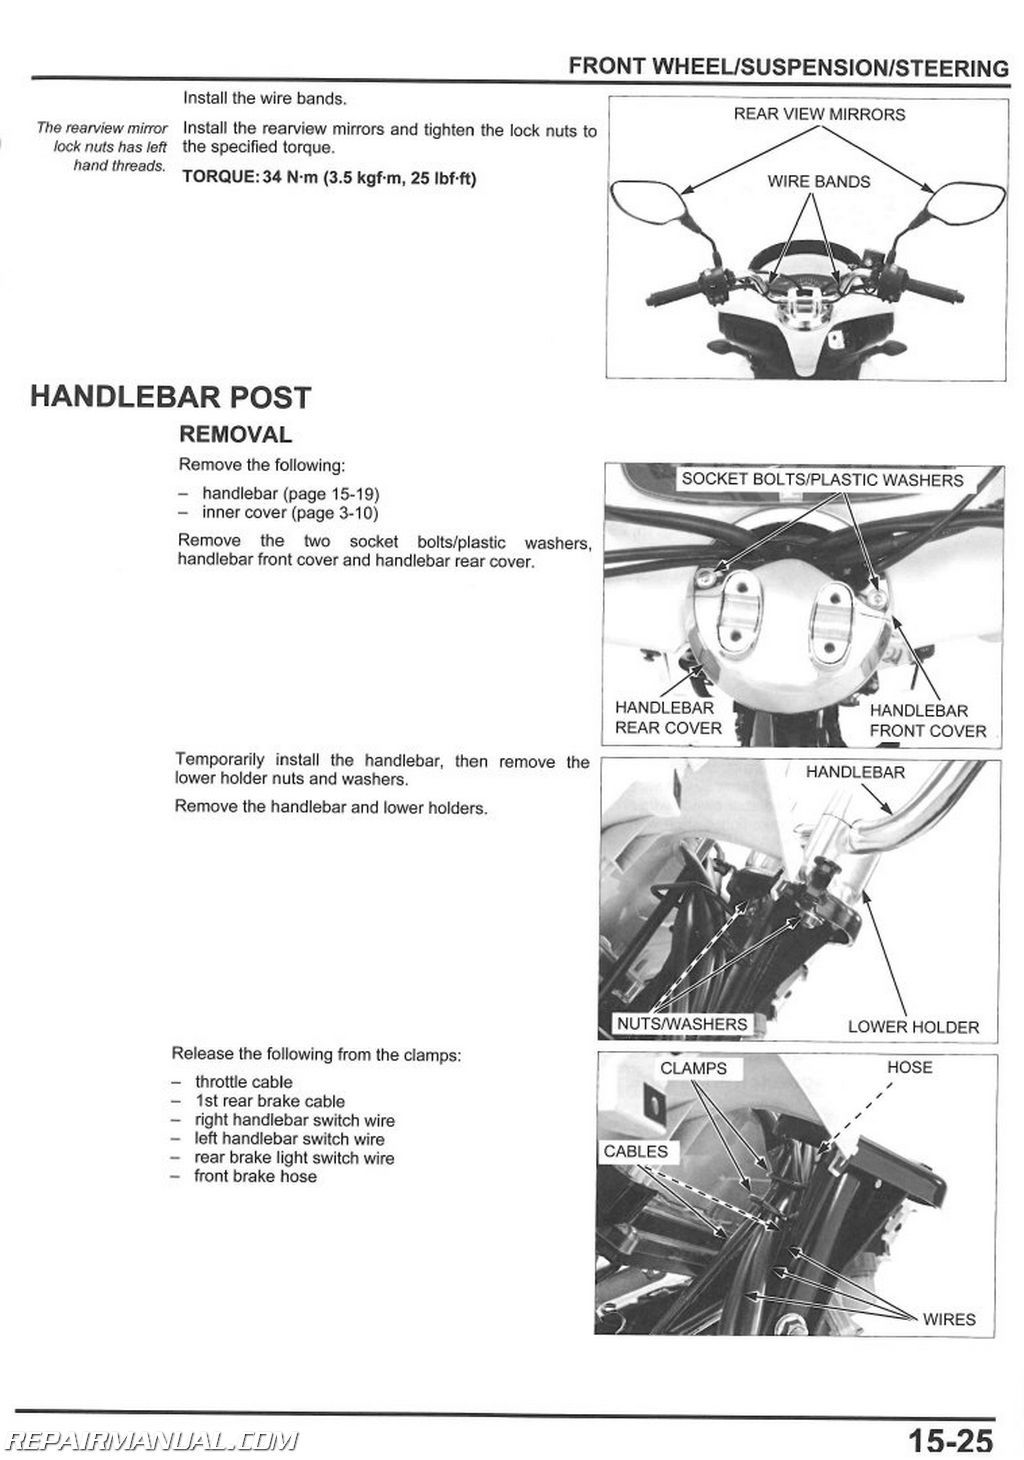 Honda Pcx125 Scooter Service Manual